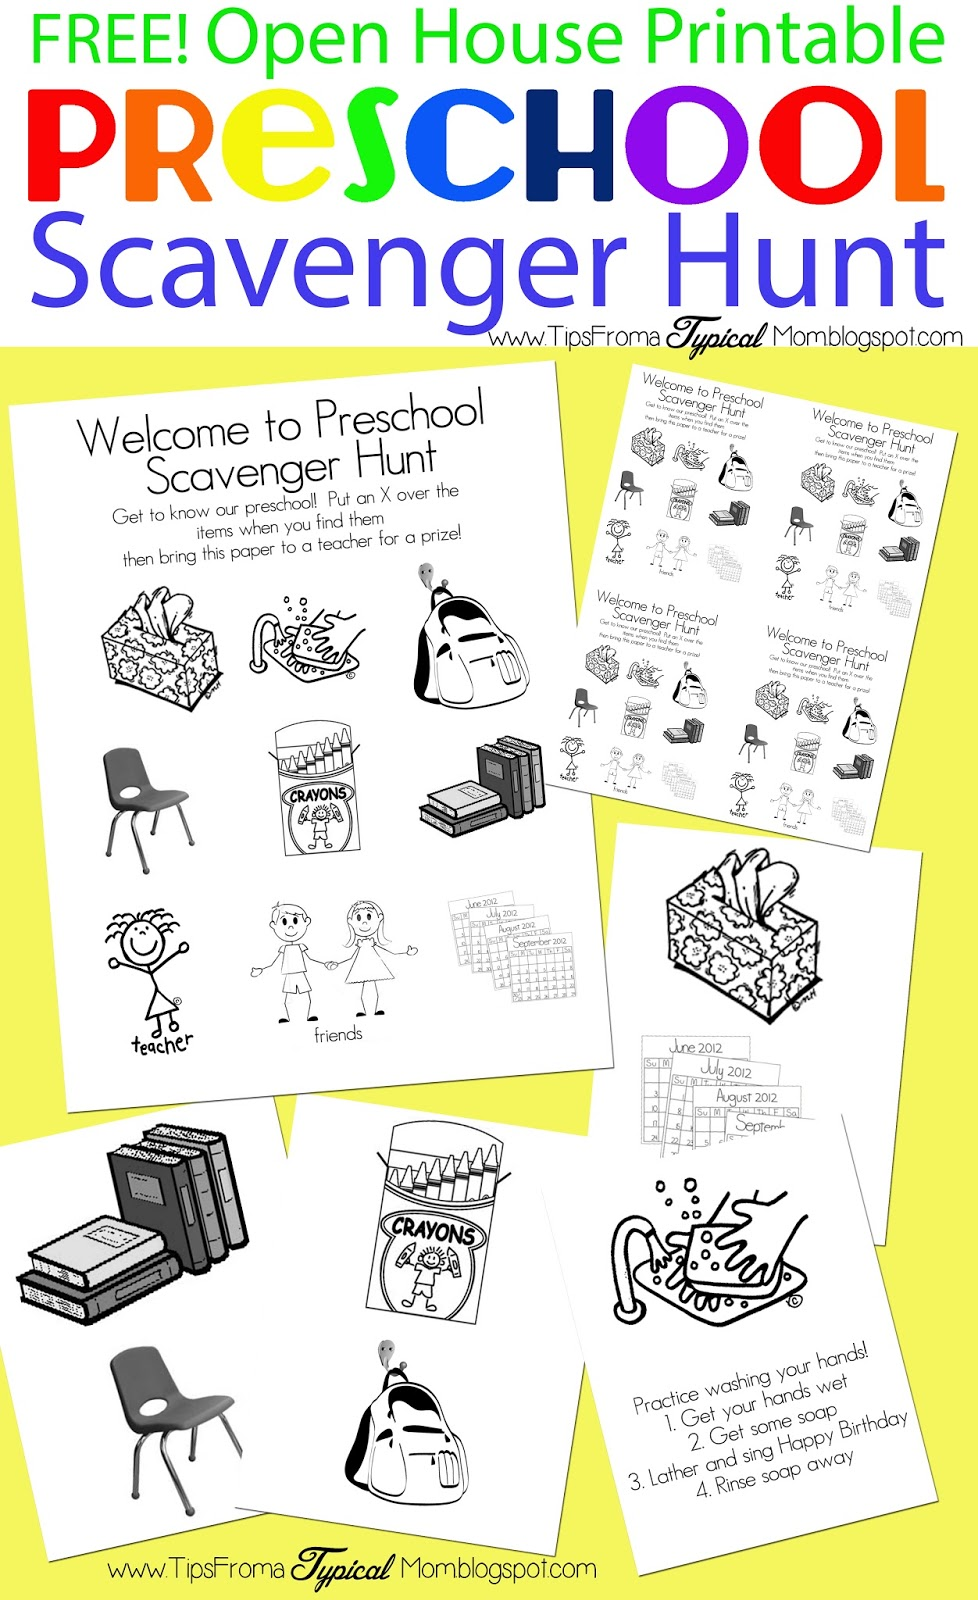 image regarding Classroom Scavenger Hunt Printable known as Preschool Open up Space Cost-free Printable Scavenger Hunt - Recommendations